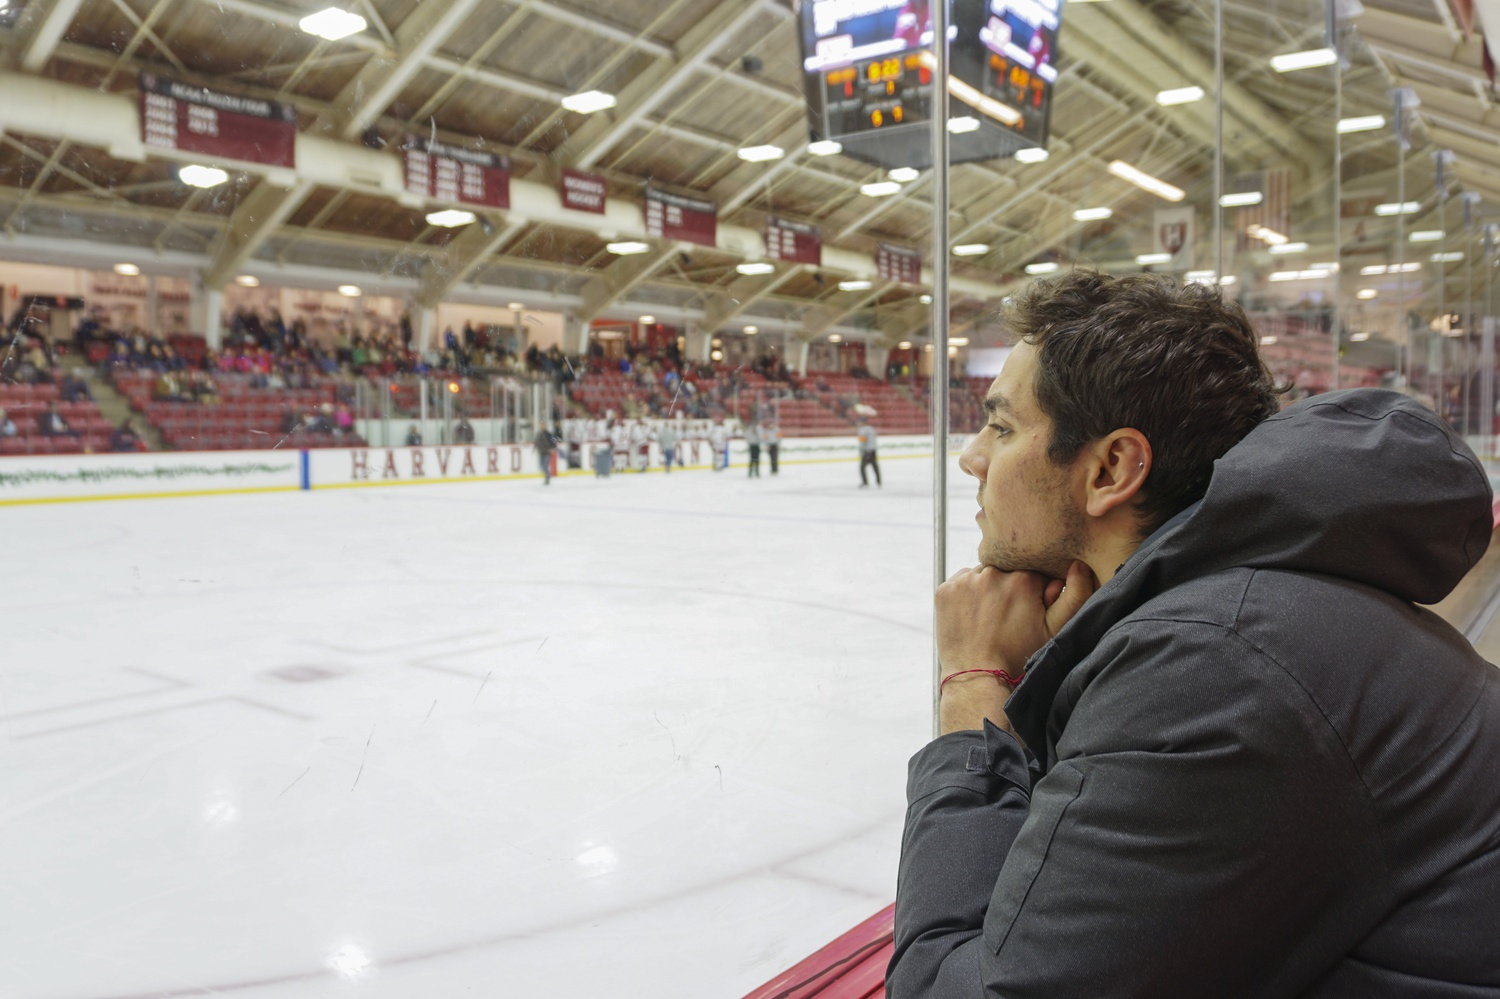 Staff writer Alec P. Kahn stares into the transparent glass that encases the rink and looks into his reflection.